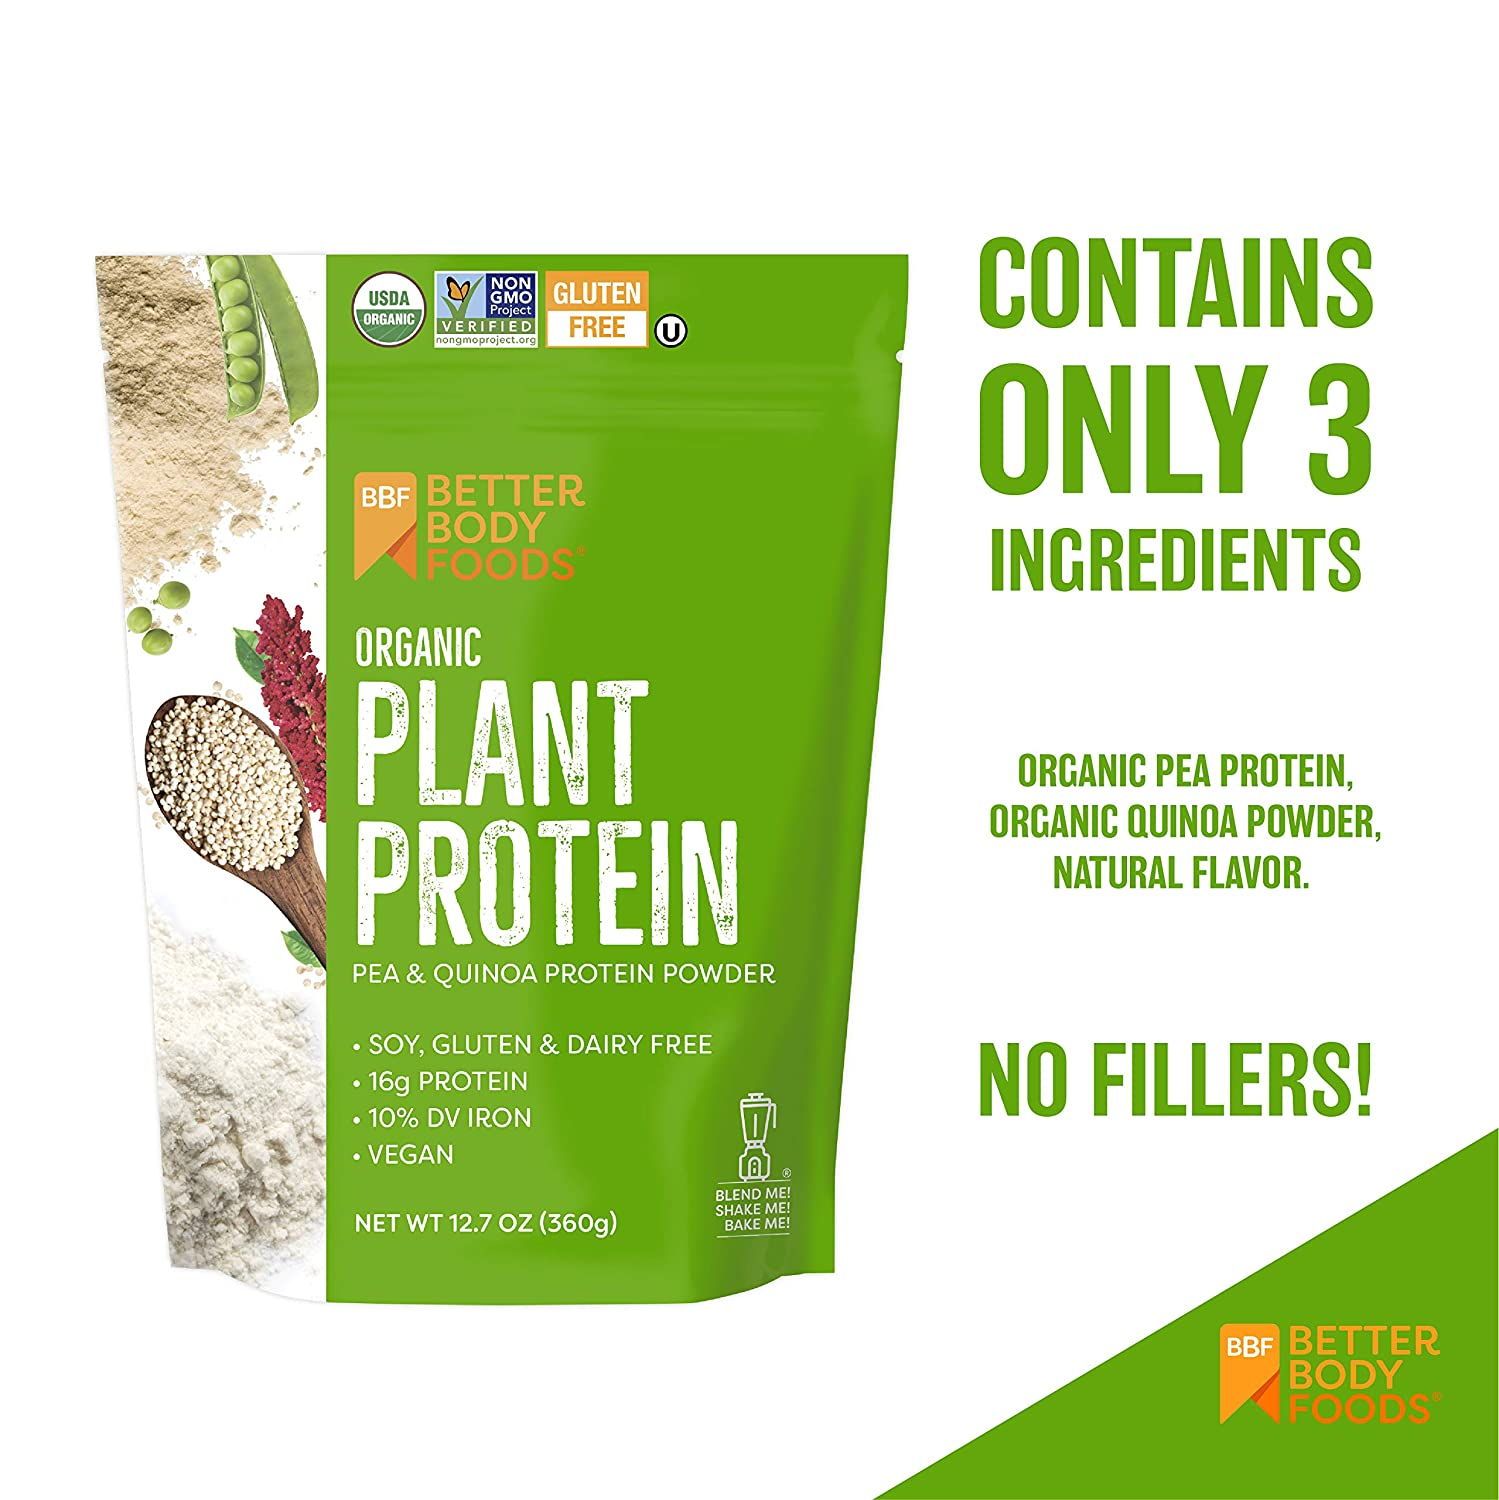 Organic plant protein from Better Body Foods.